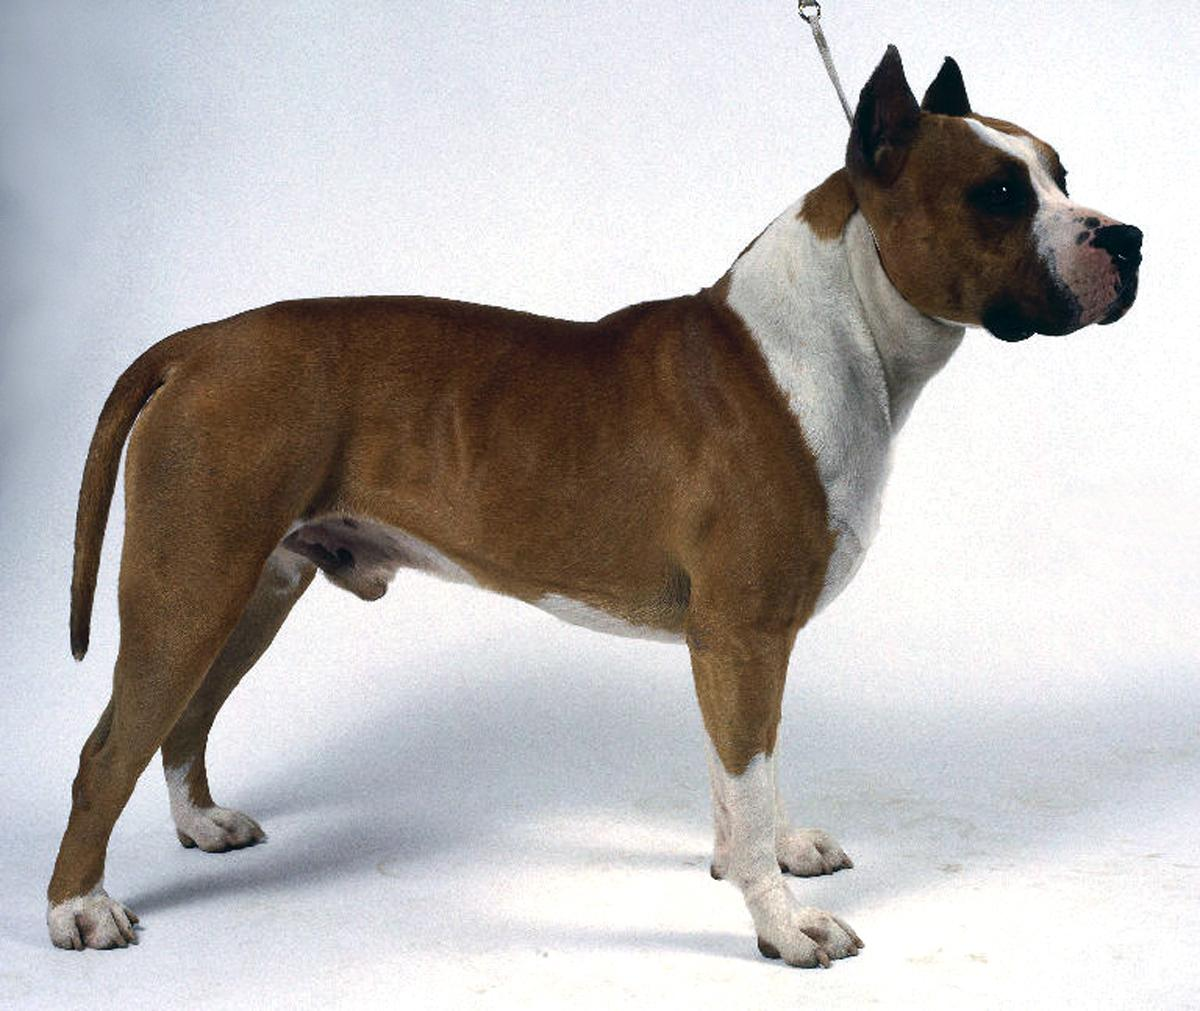 Bull and Terrier Dog: Bull Bull And Terrier Dog In Rack Breed